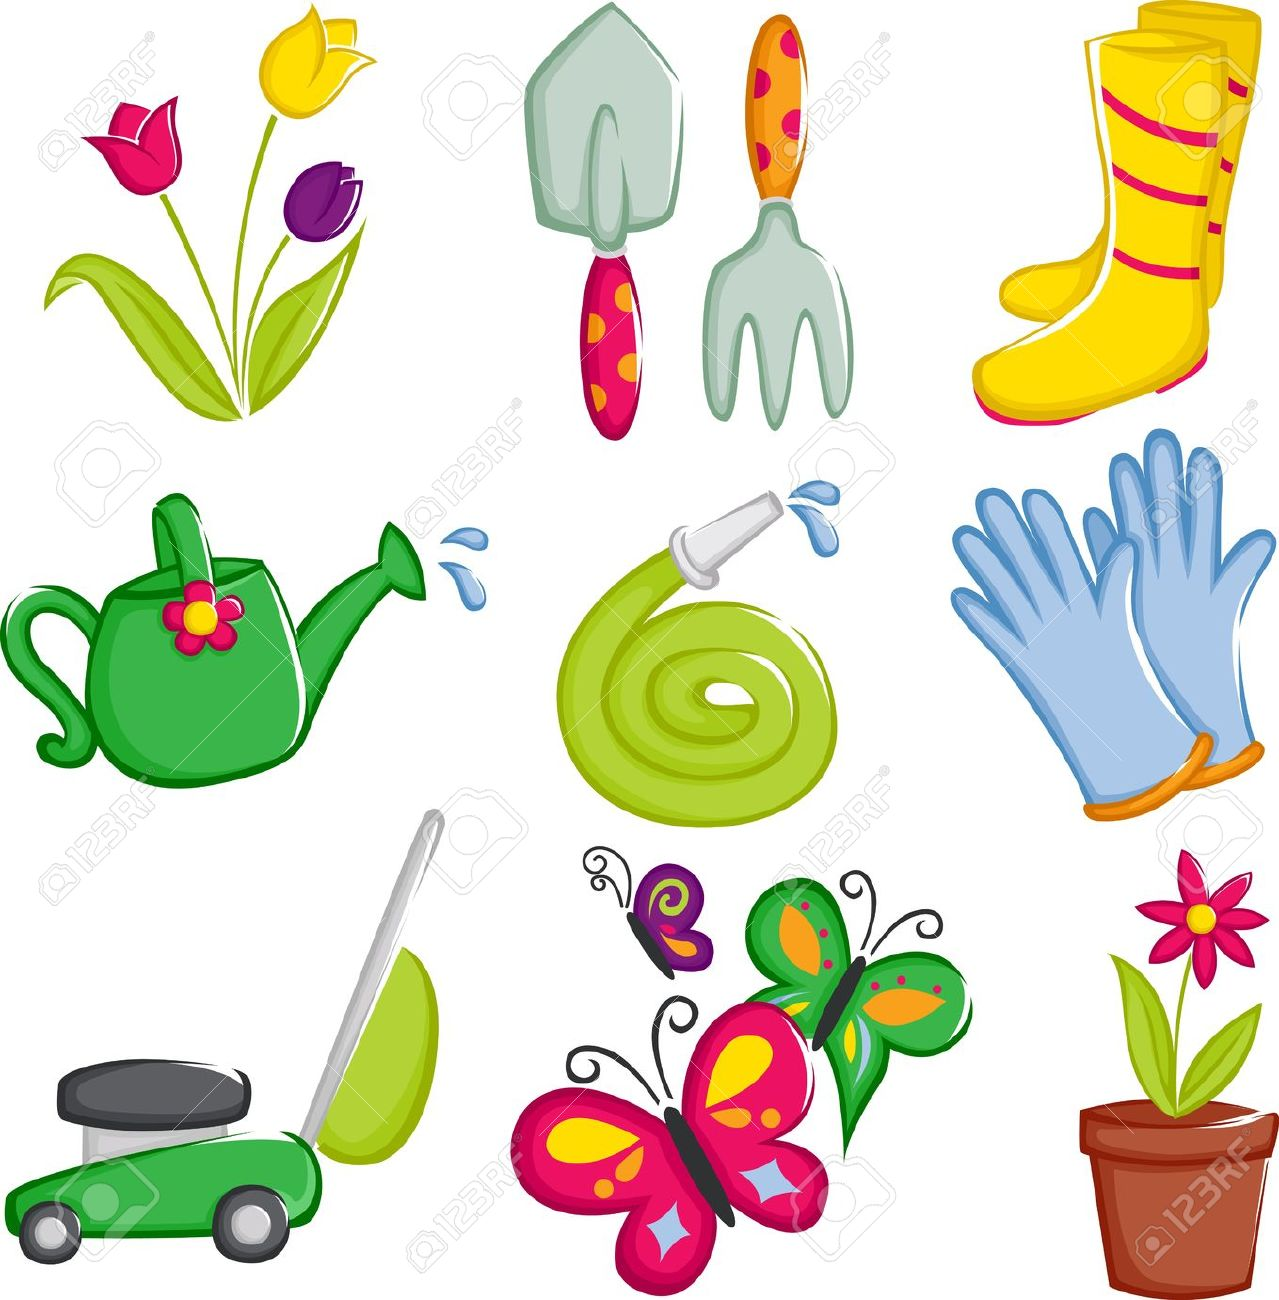 Gardening tools and equipment clipart 2 » Clipart Station.